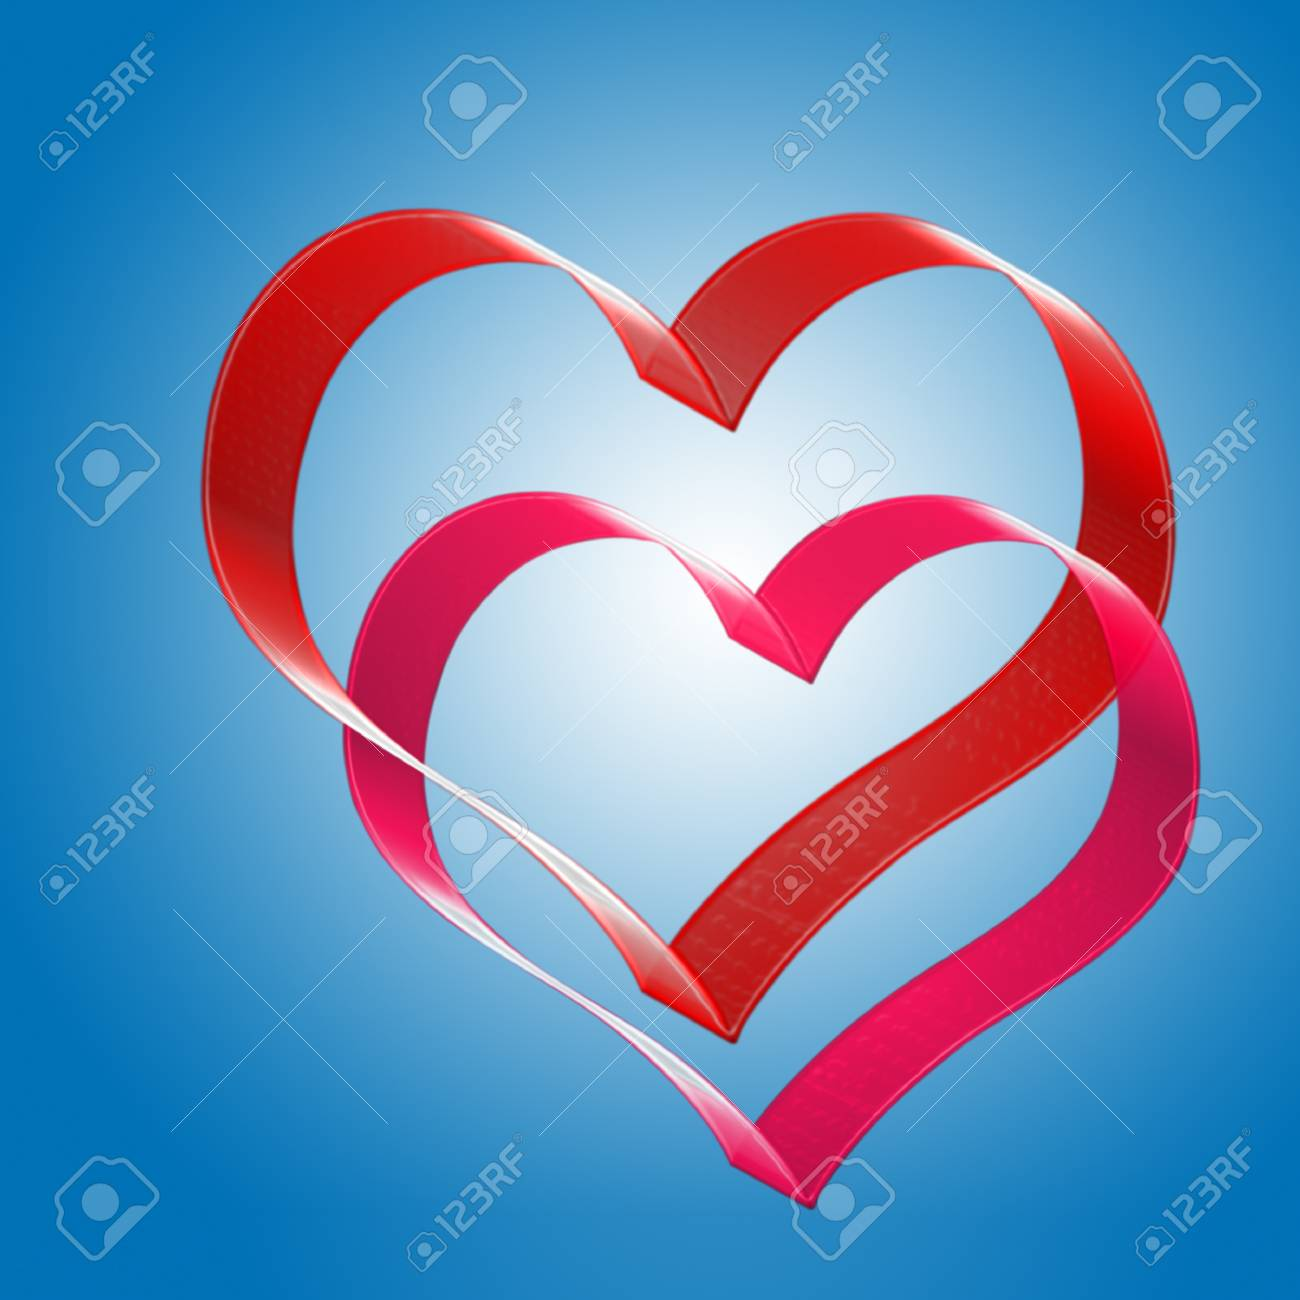 two hearts. the valentine's day. Stock Photo - 17766625